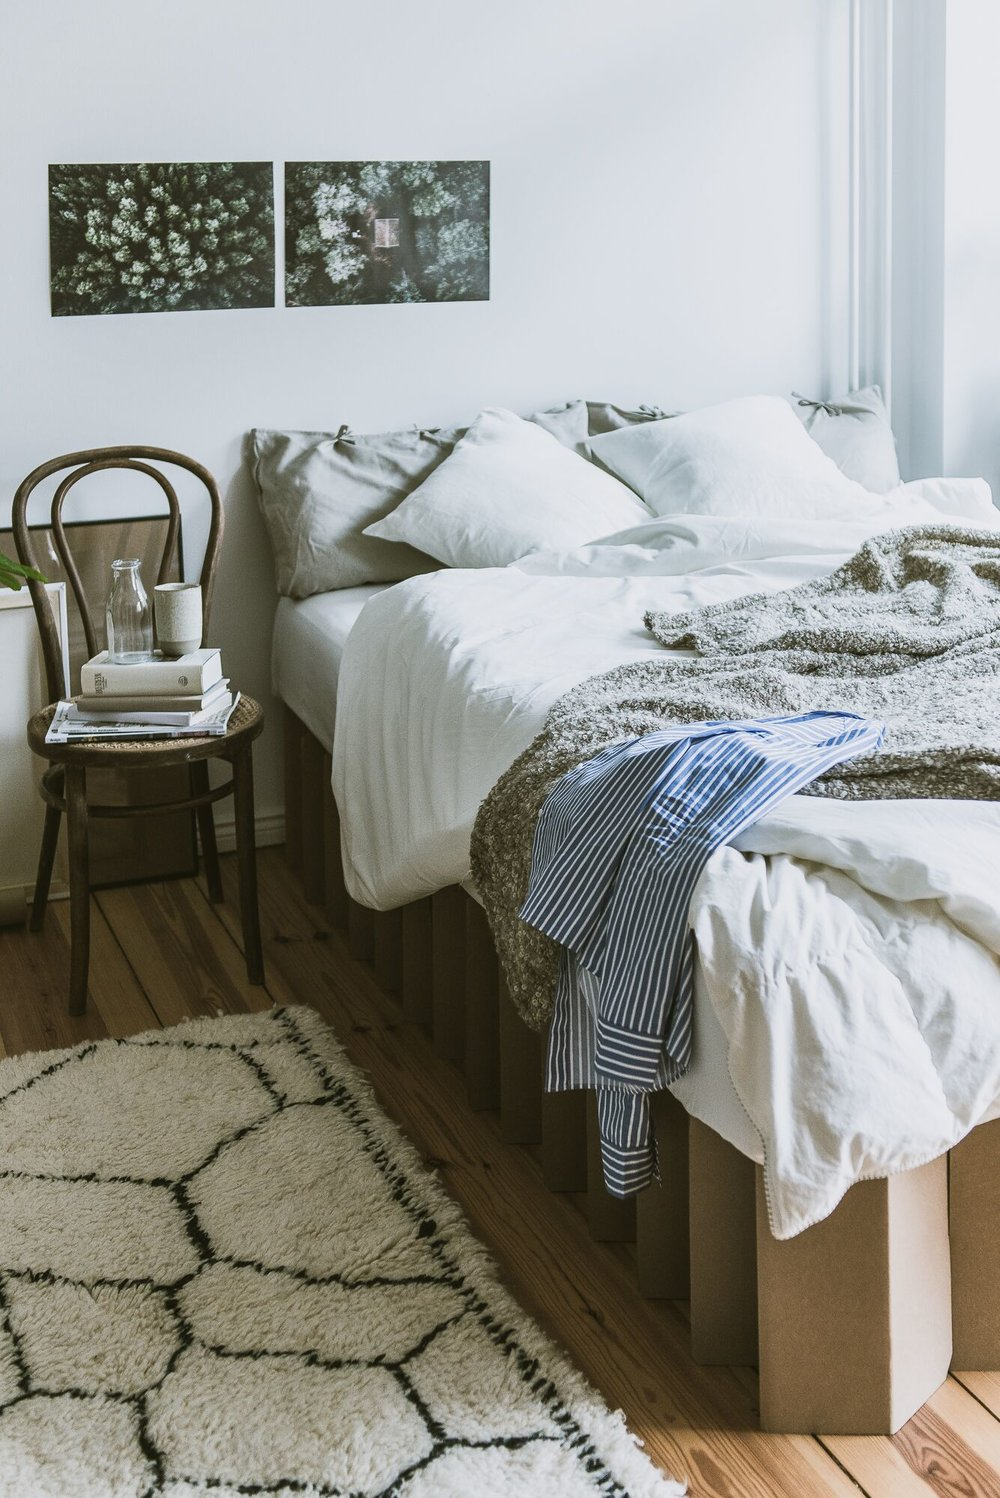 Classic Cardboard bed for a scandinavian styled bedroom